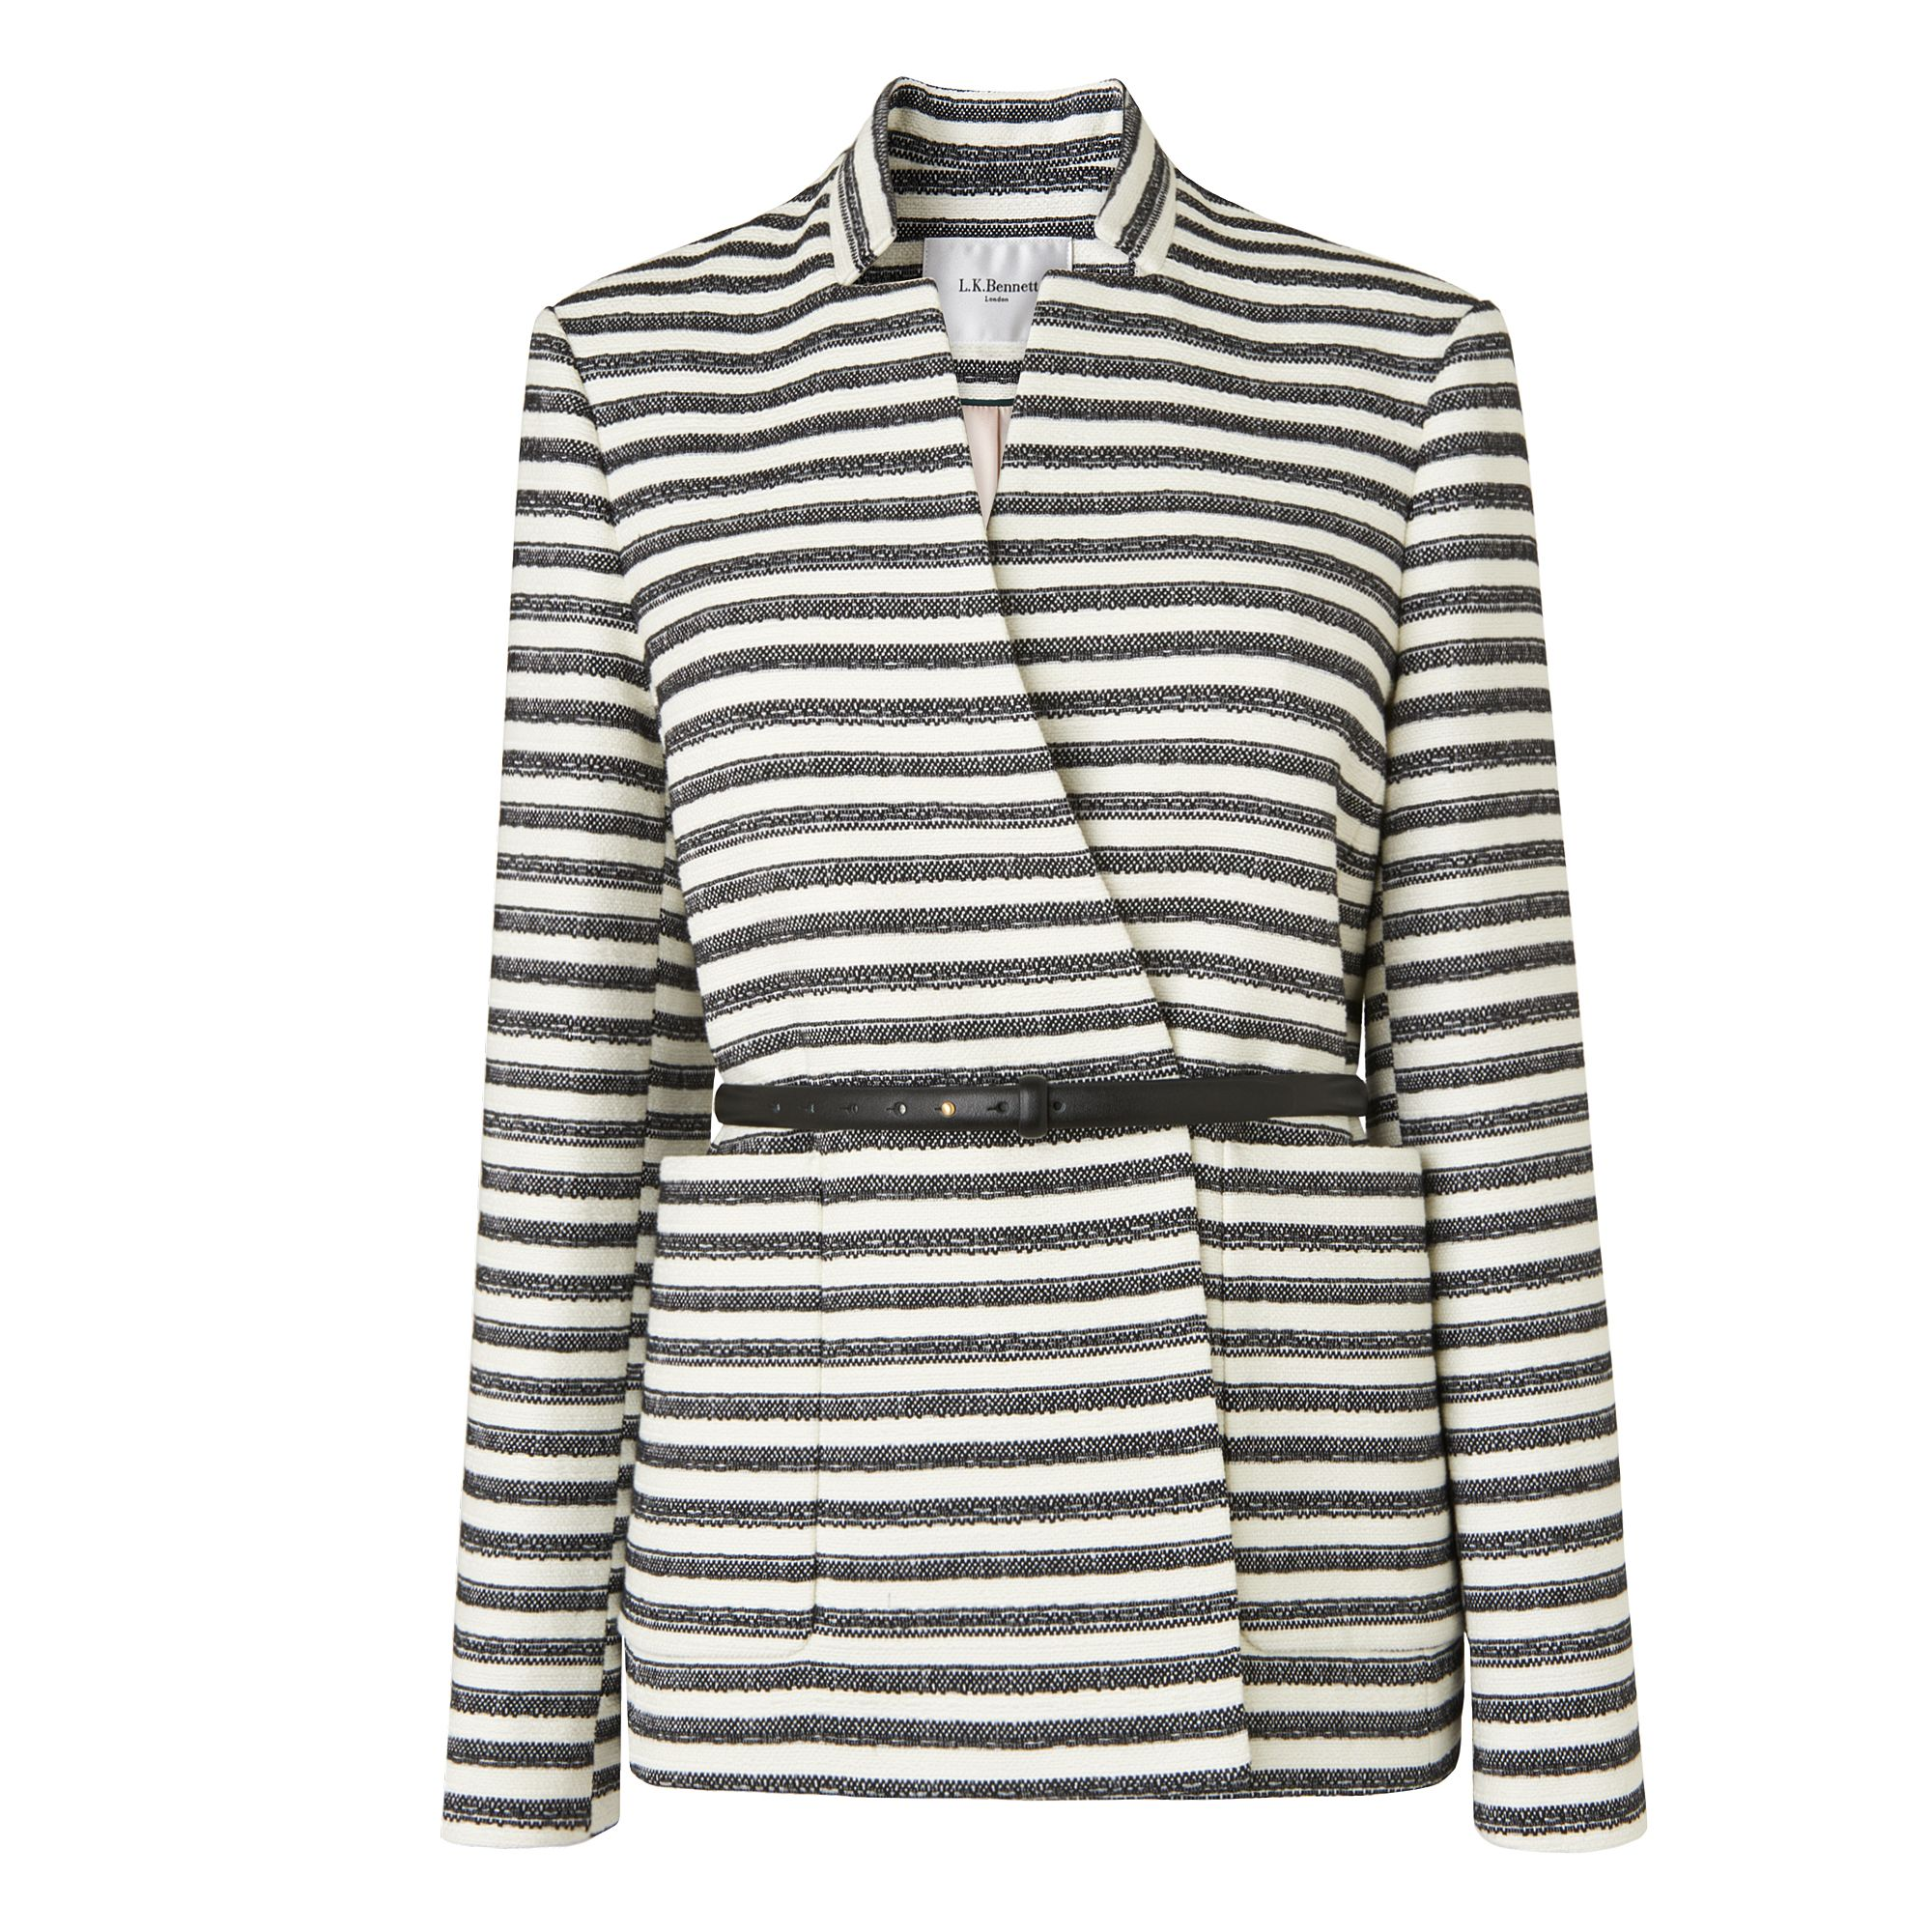 L.K. Bennett Cora Monochrome Stripe Jacket, Multi-Coloured